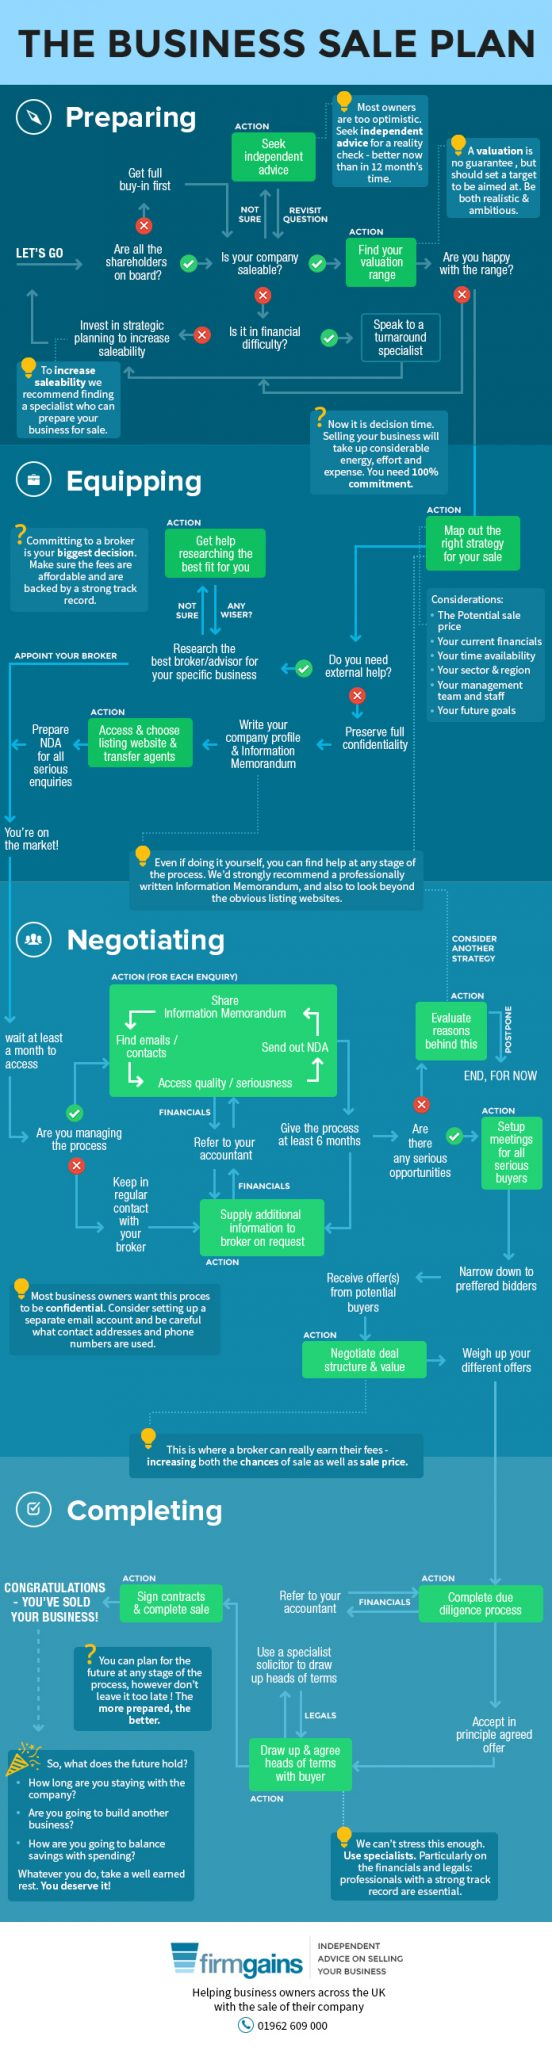 Complete Business Sale Process Infographic